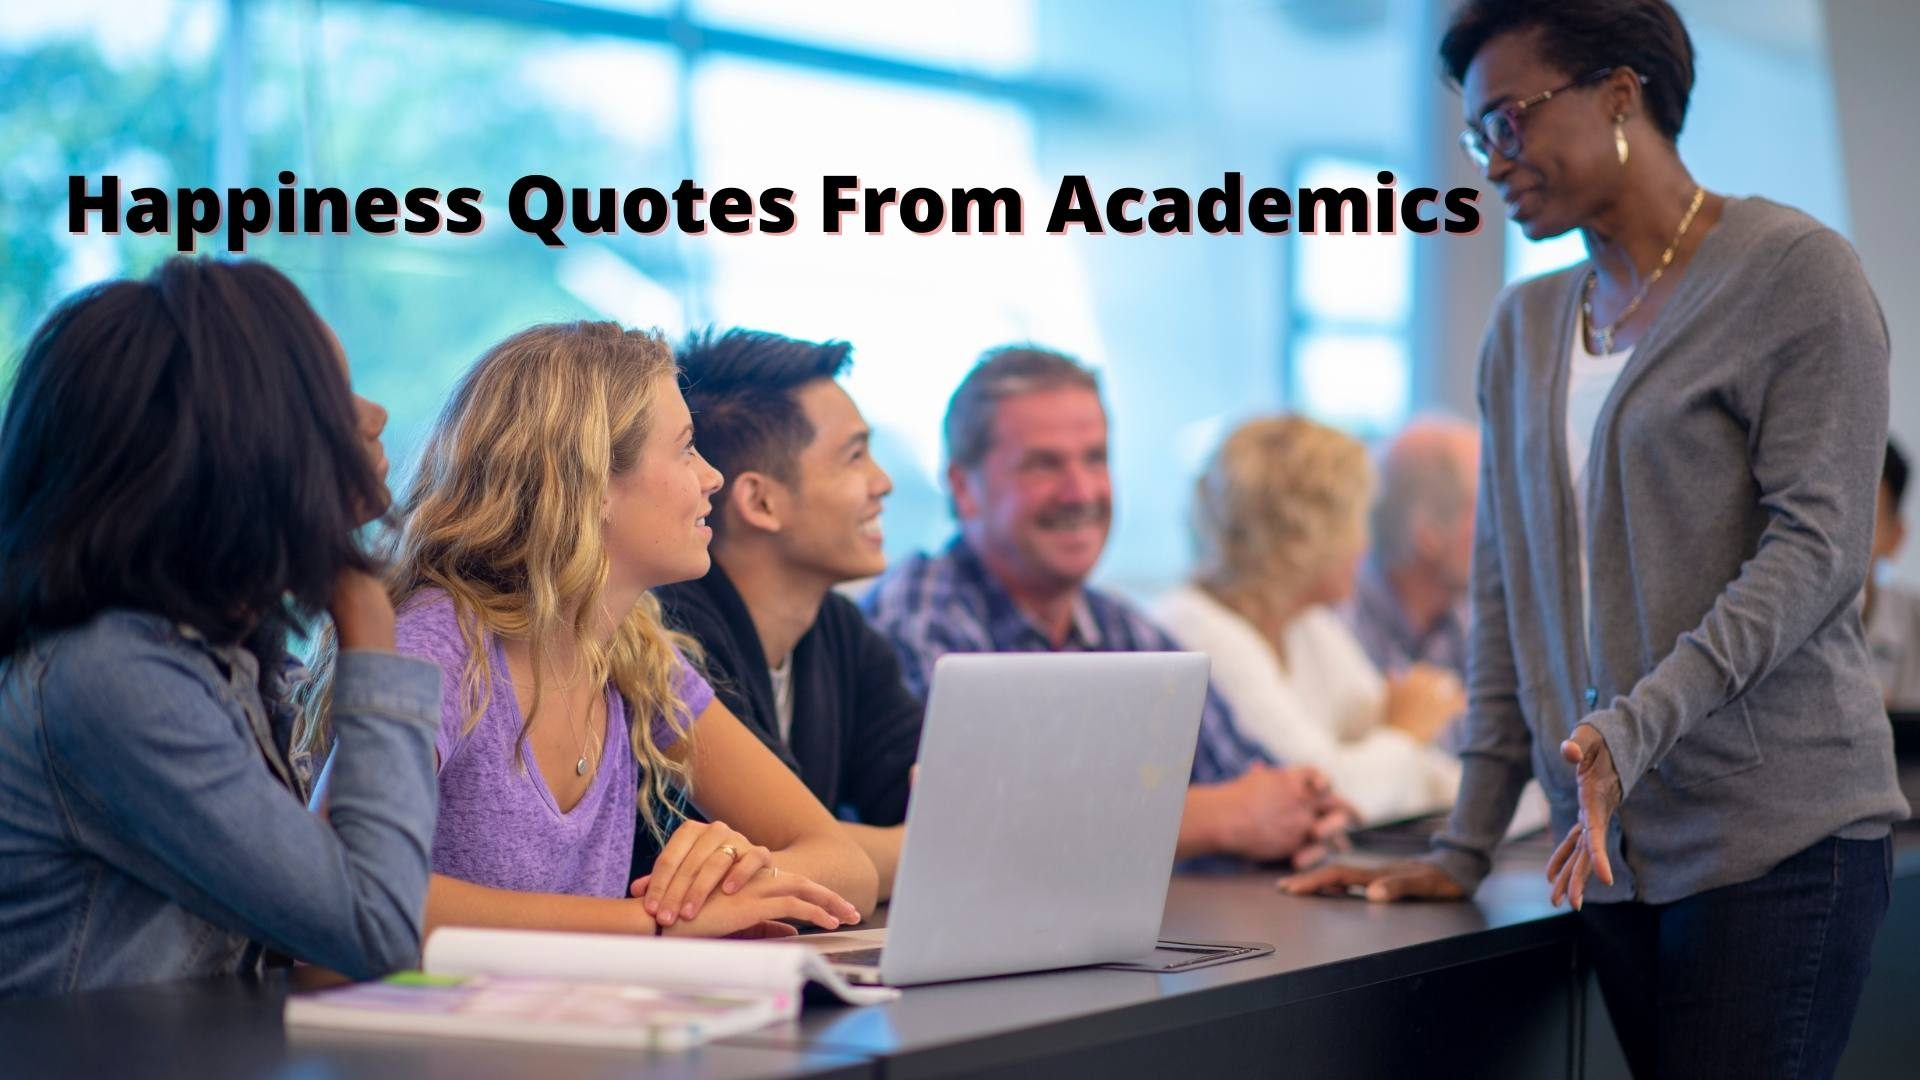 short happiness quotes from academics